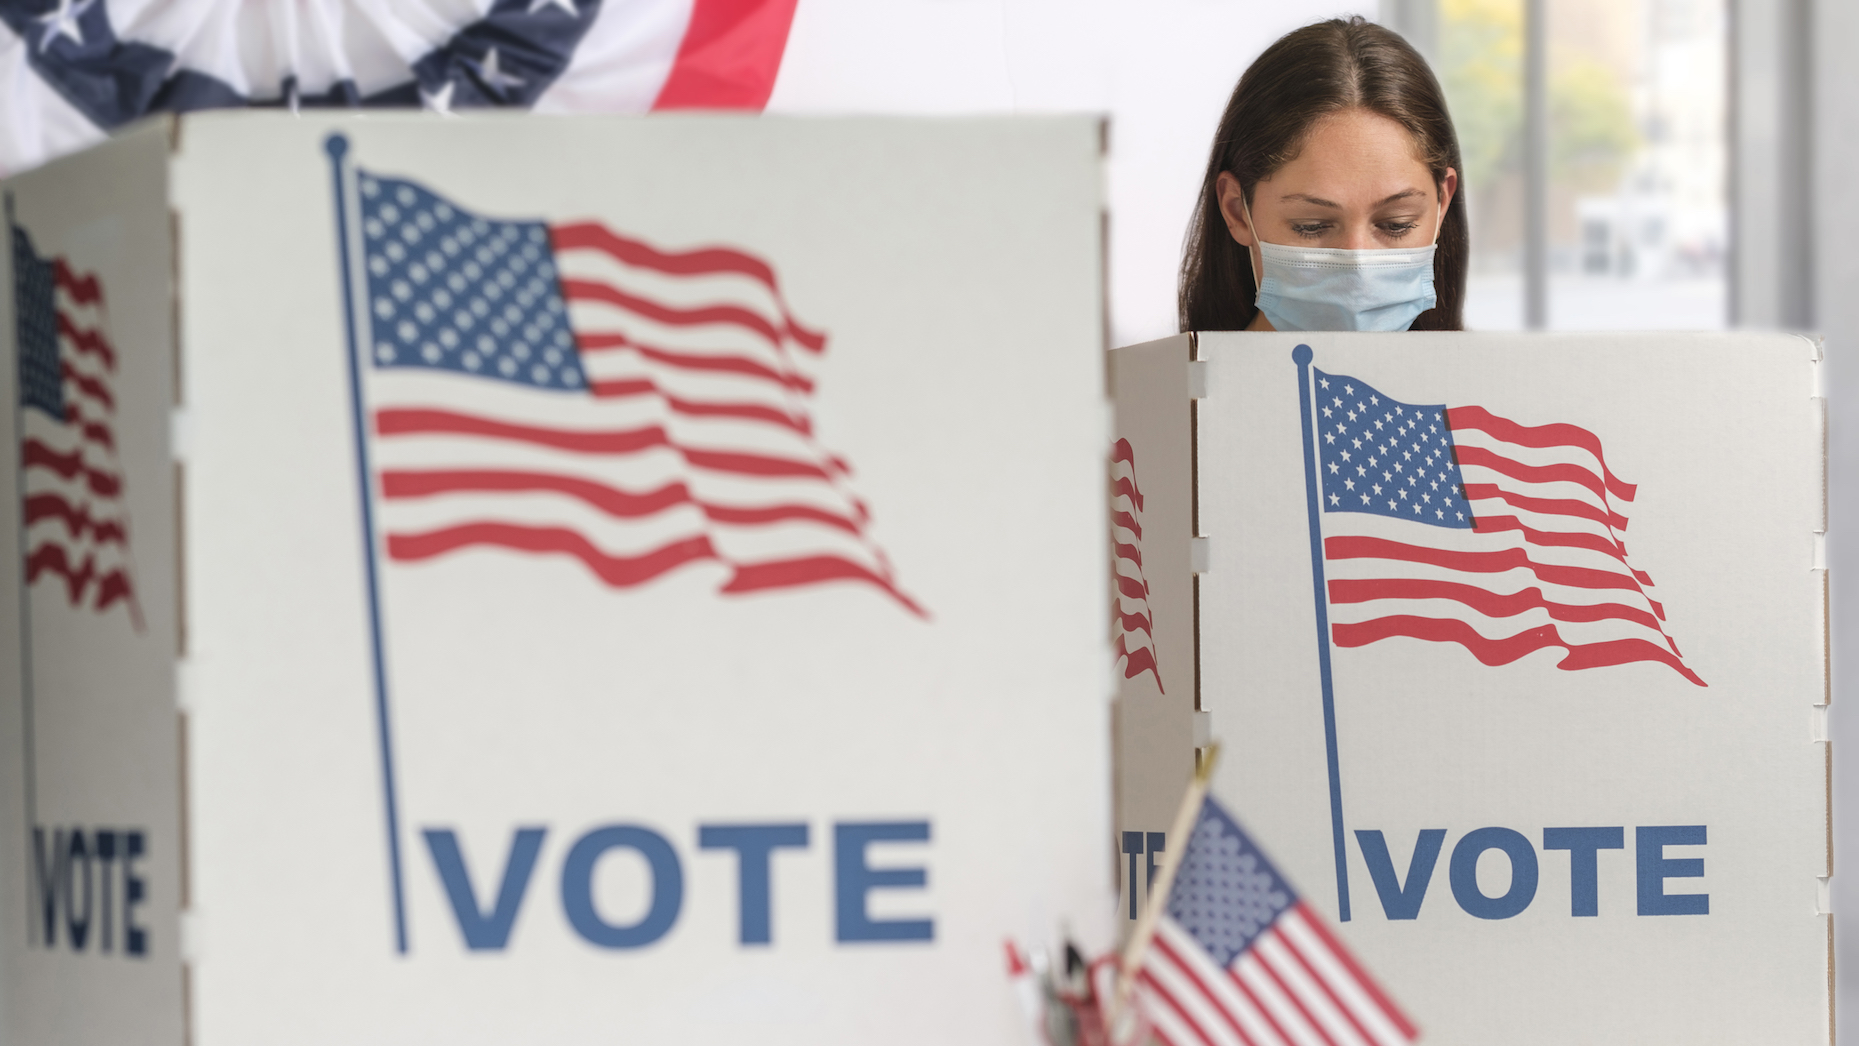 Multitudes of Americans considering leaving US after election